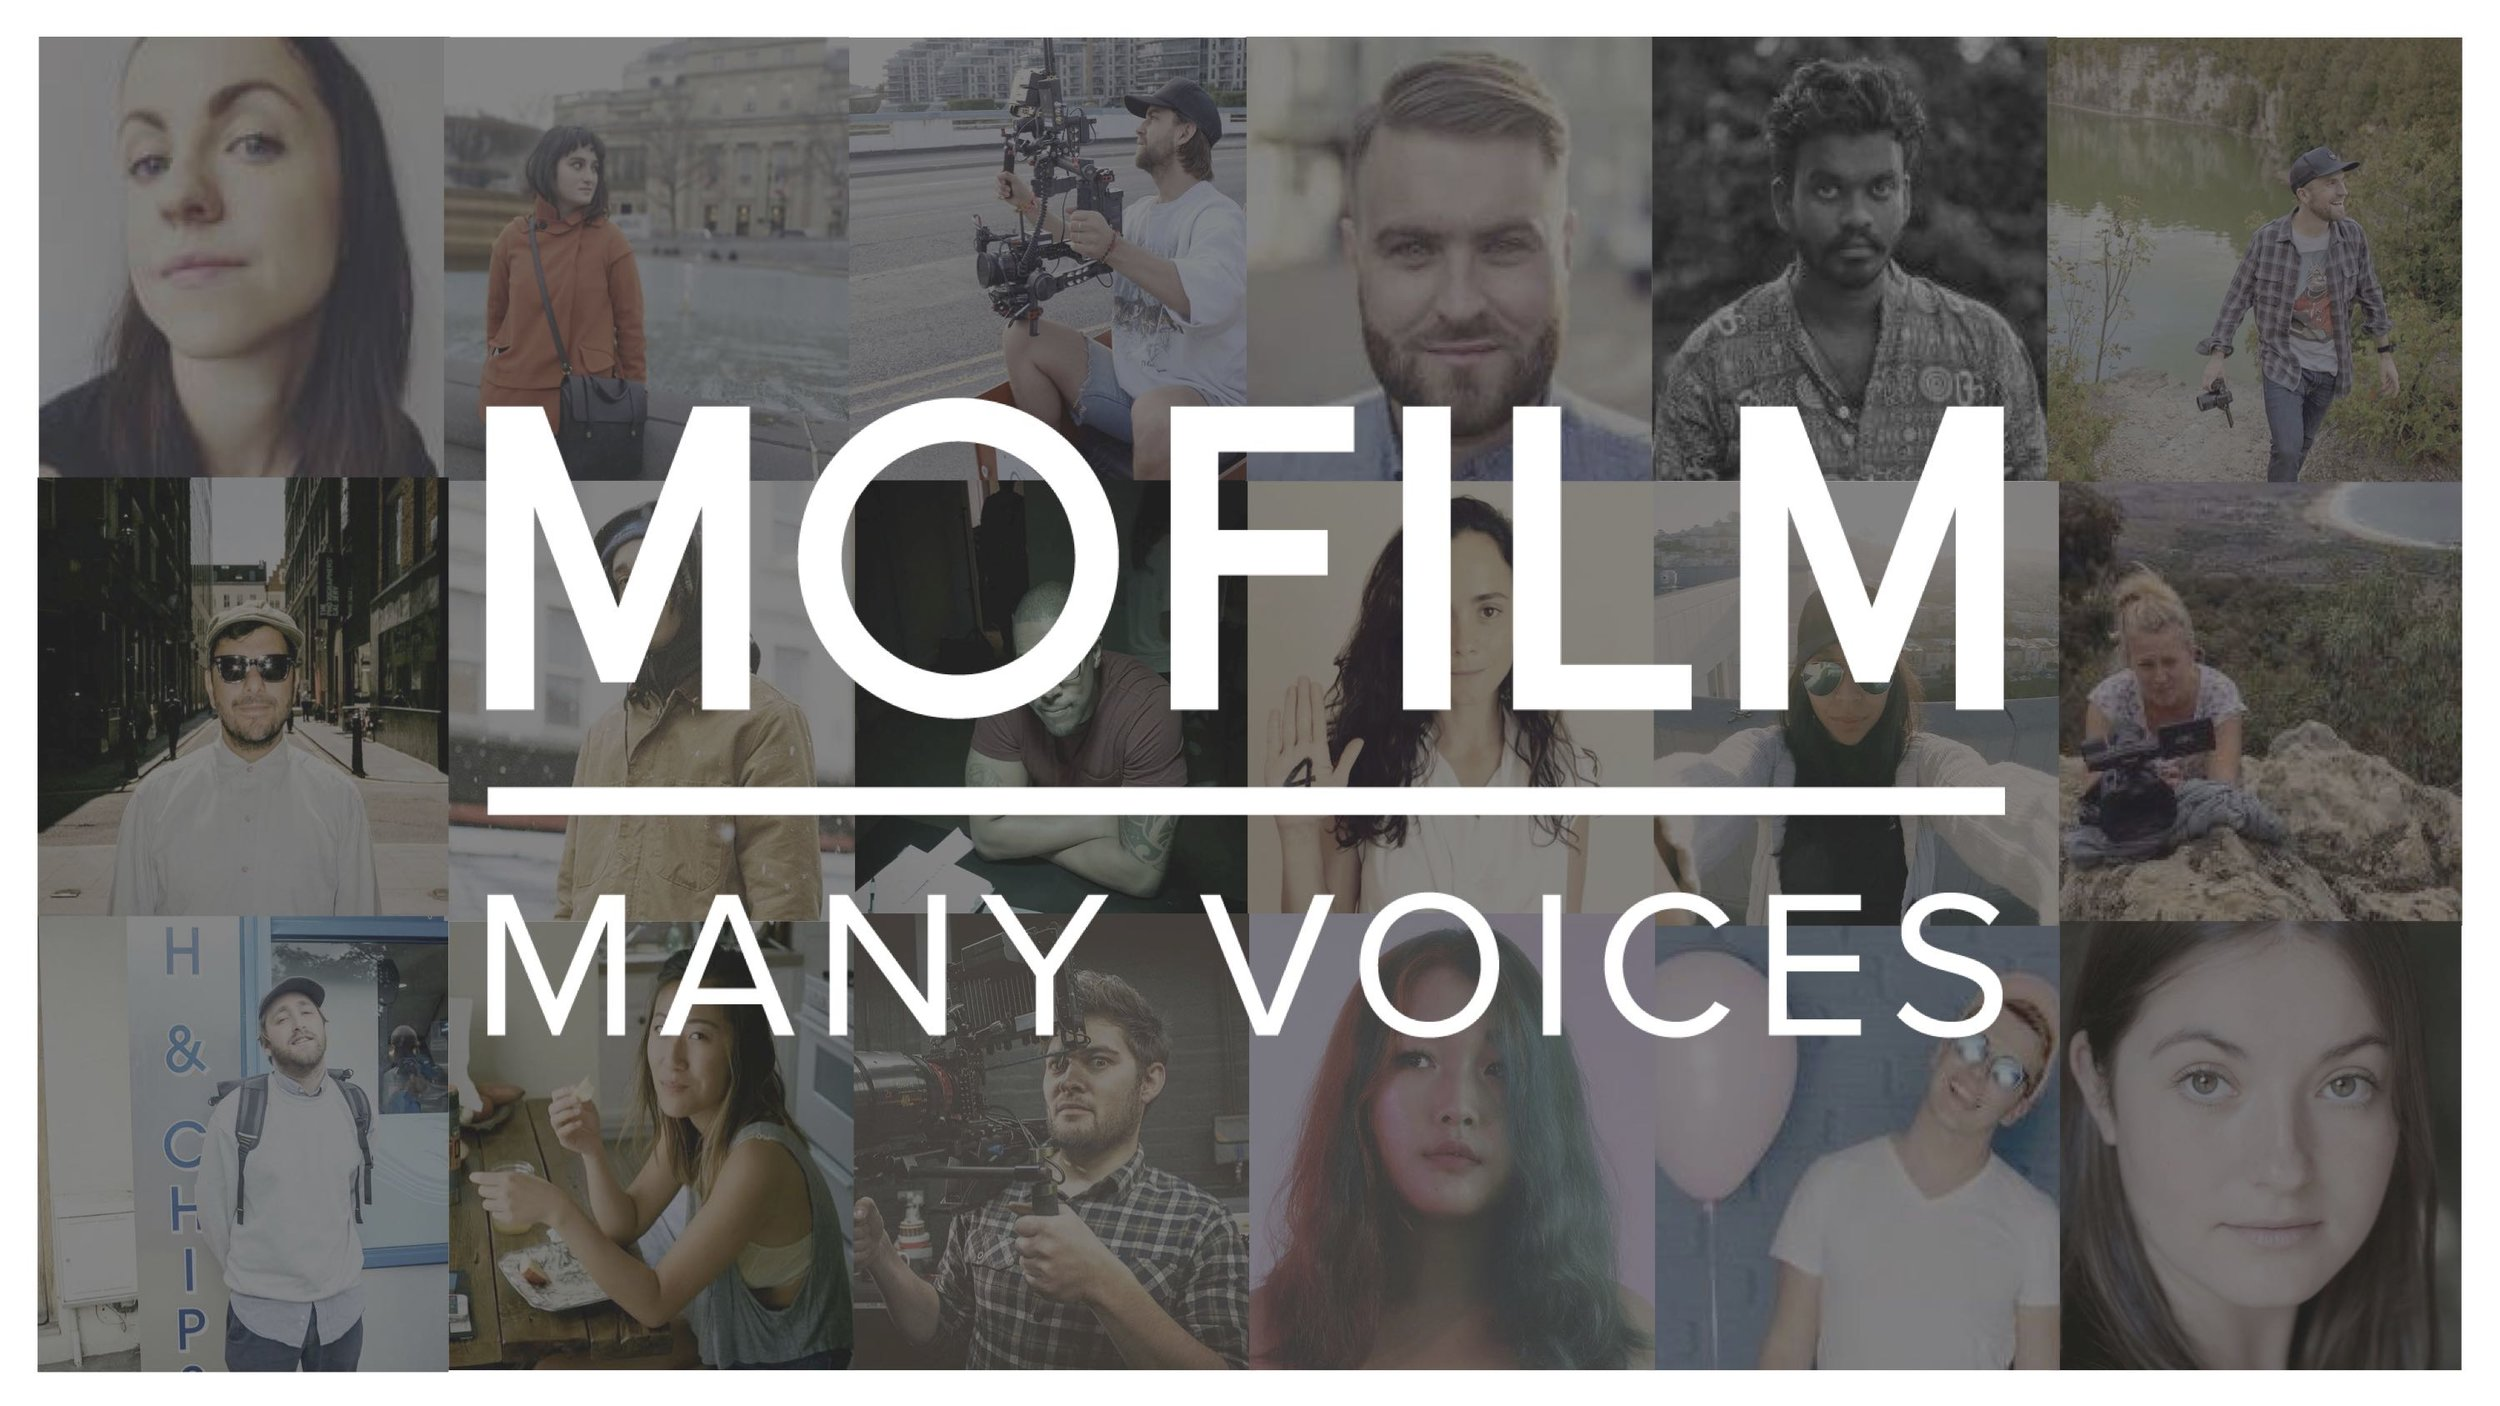 Mofilms MANY VOICES  JUDGING  Our co-founder Roshni joined the judging panel for Mofilm's MANY VOICES initiative, where filmmakers were challenged to send in their pitches for the brief 'Year of the Woman'. Safe to say all the judges were blown away by the entries!